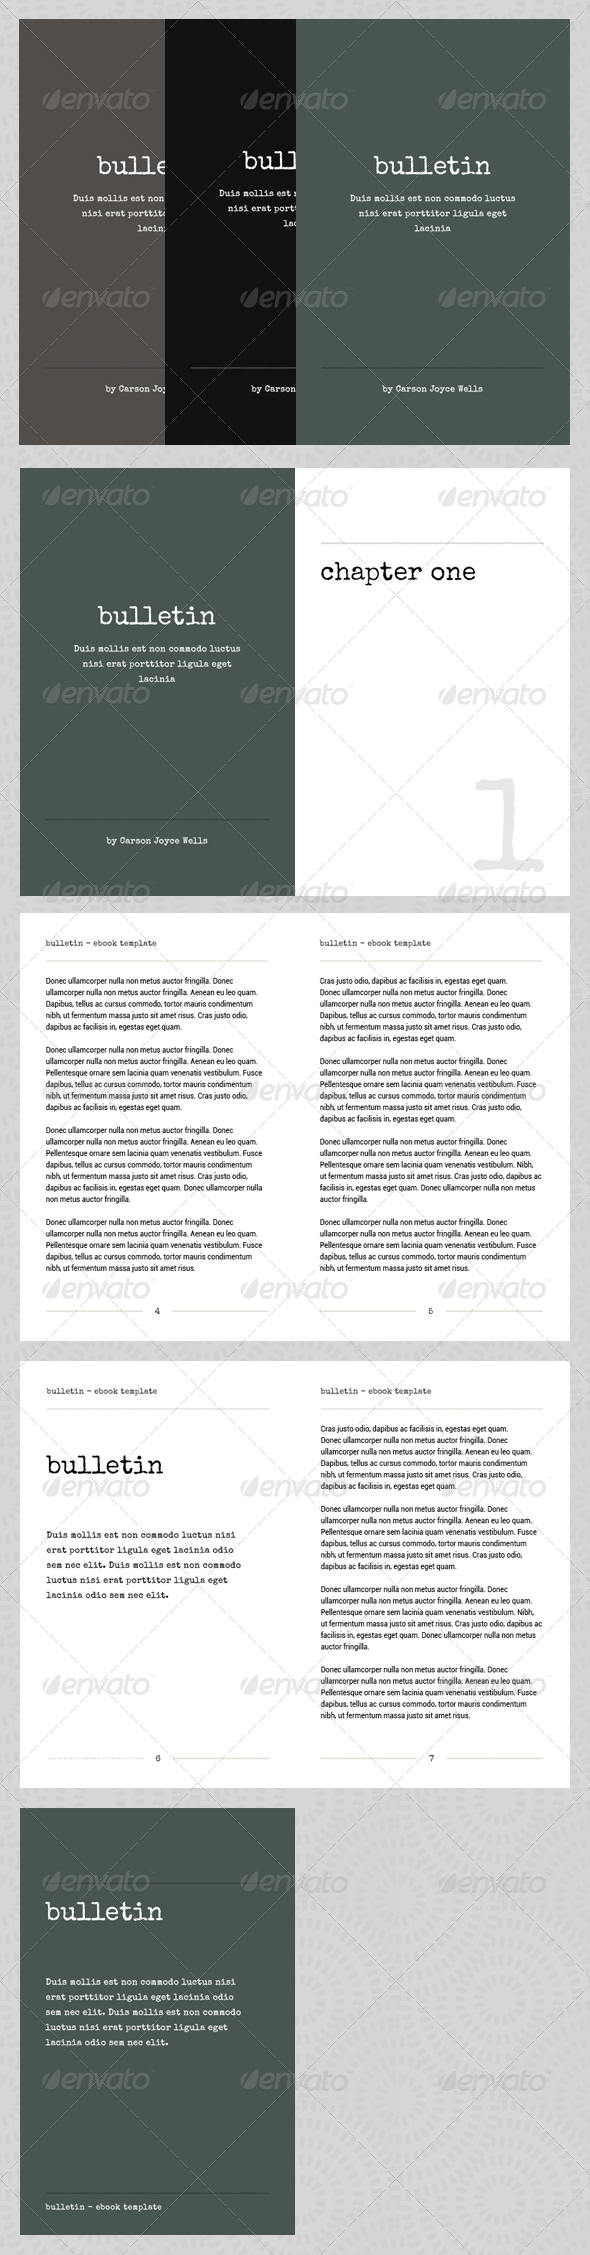 Bulletin - eBook Template or Print Book - Miscellaneous Print Templates